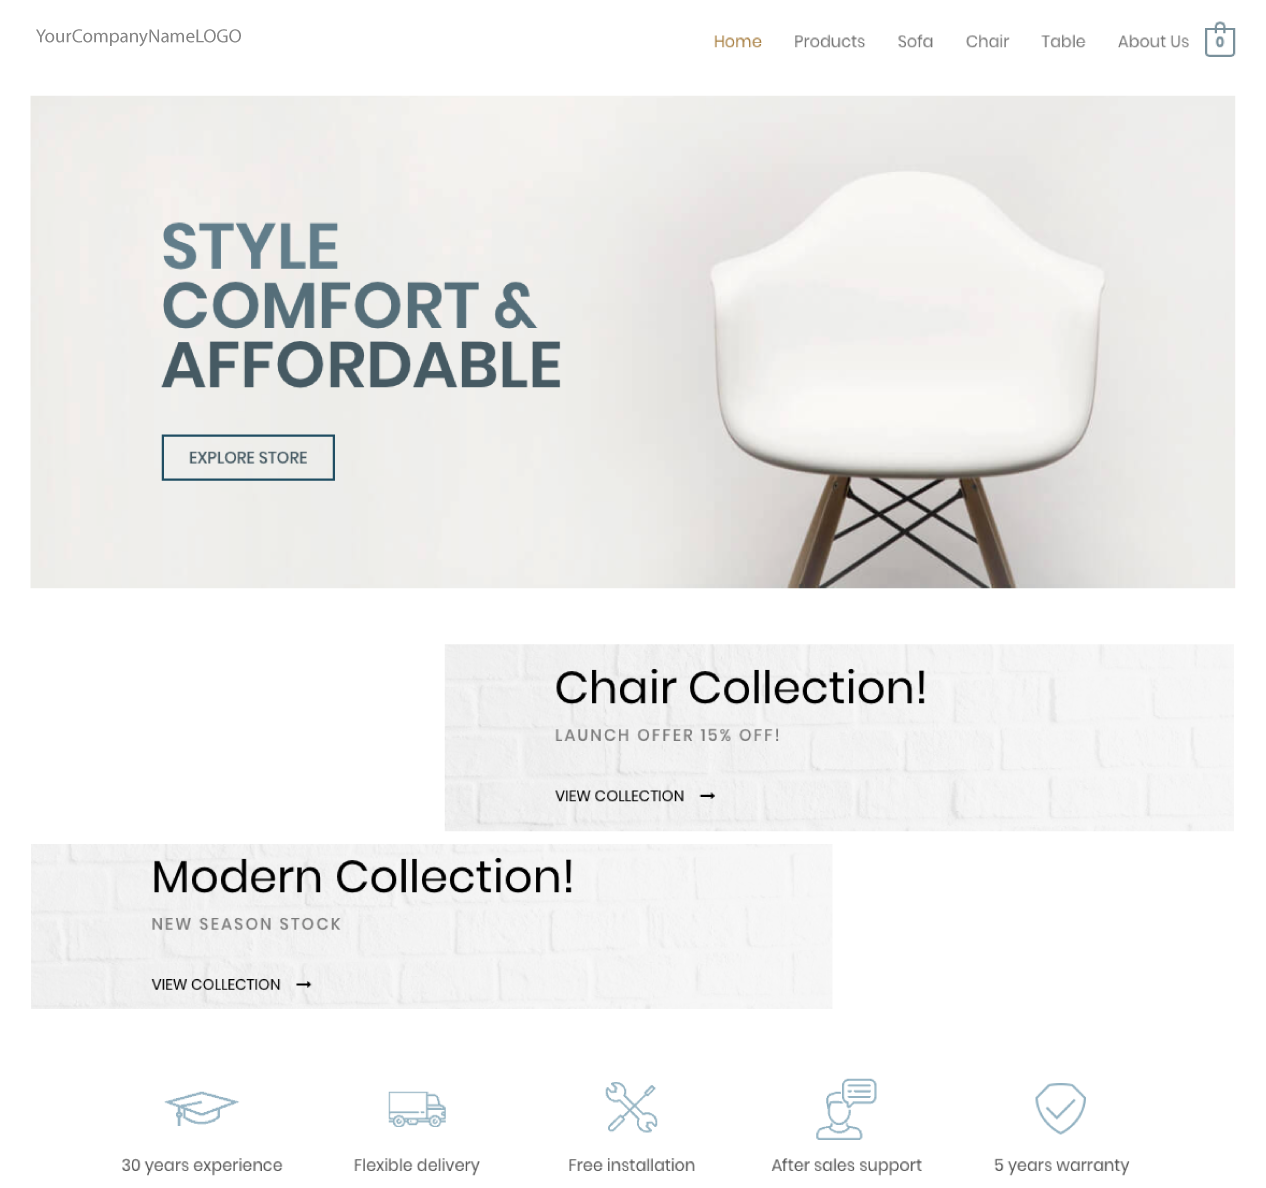 An image of a Furniture new website design